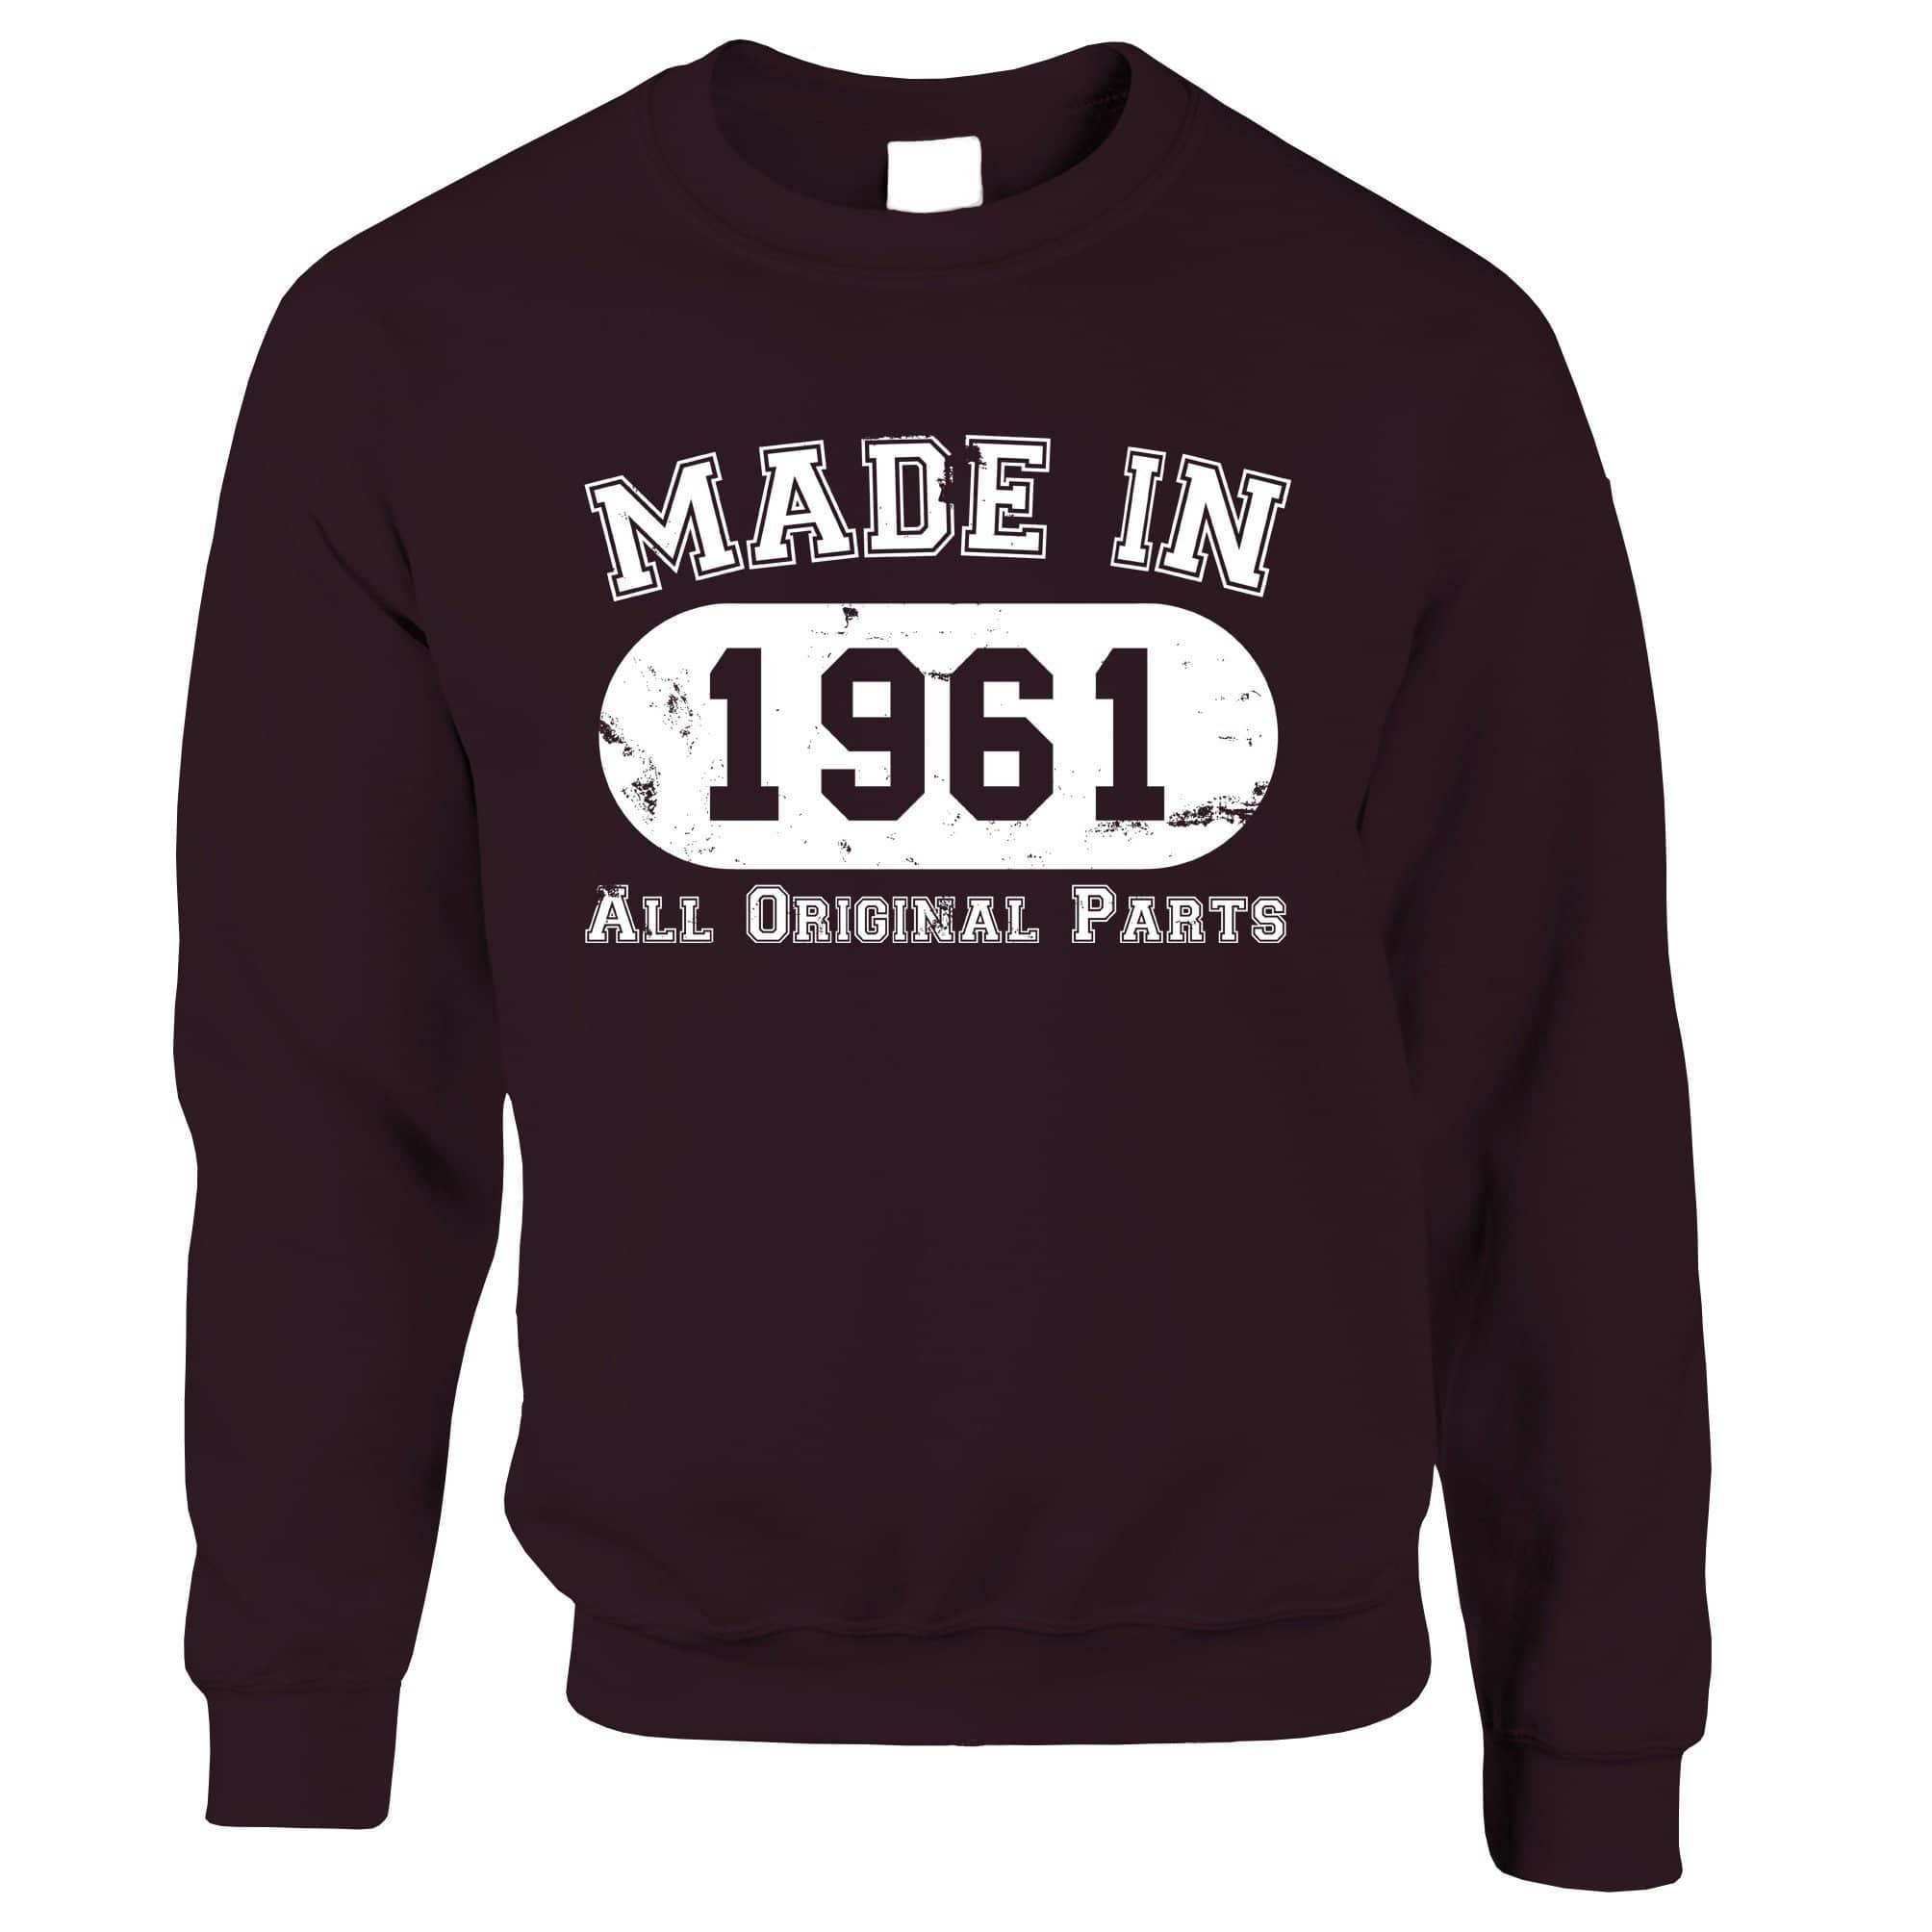 Made in 1961 All Original Parts Sweatshirt Jumper [Distressed]